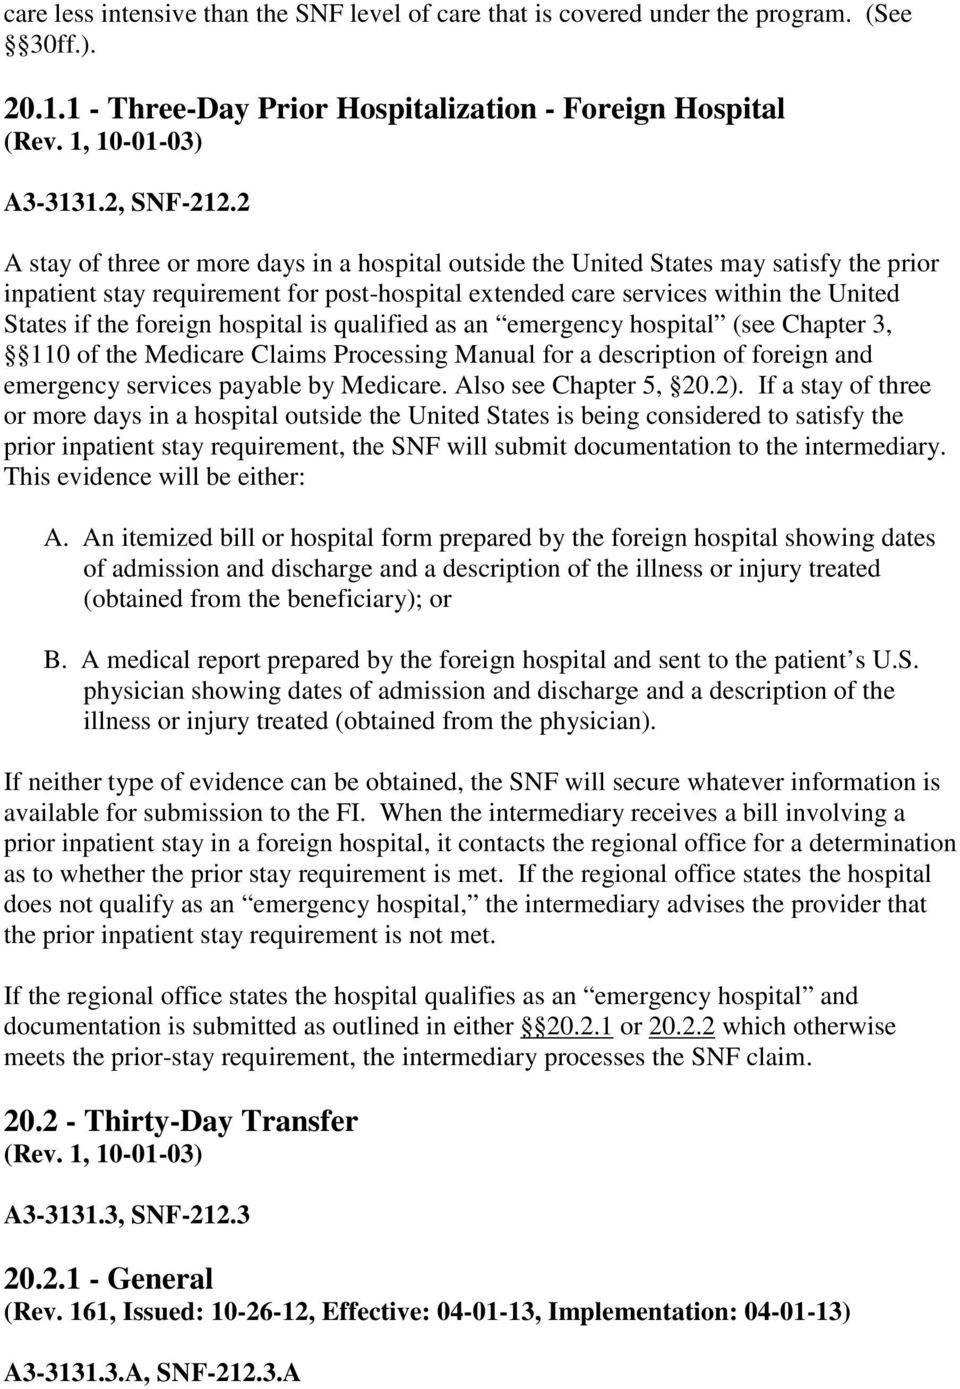 foreign hospital is qualified as an emergency hospital (see Chapter 3, 110 of the Medicare Claims Processing Manual for a description of foreign and emergency services payable by Medicare.